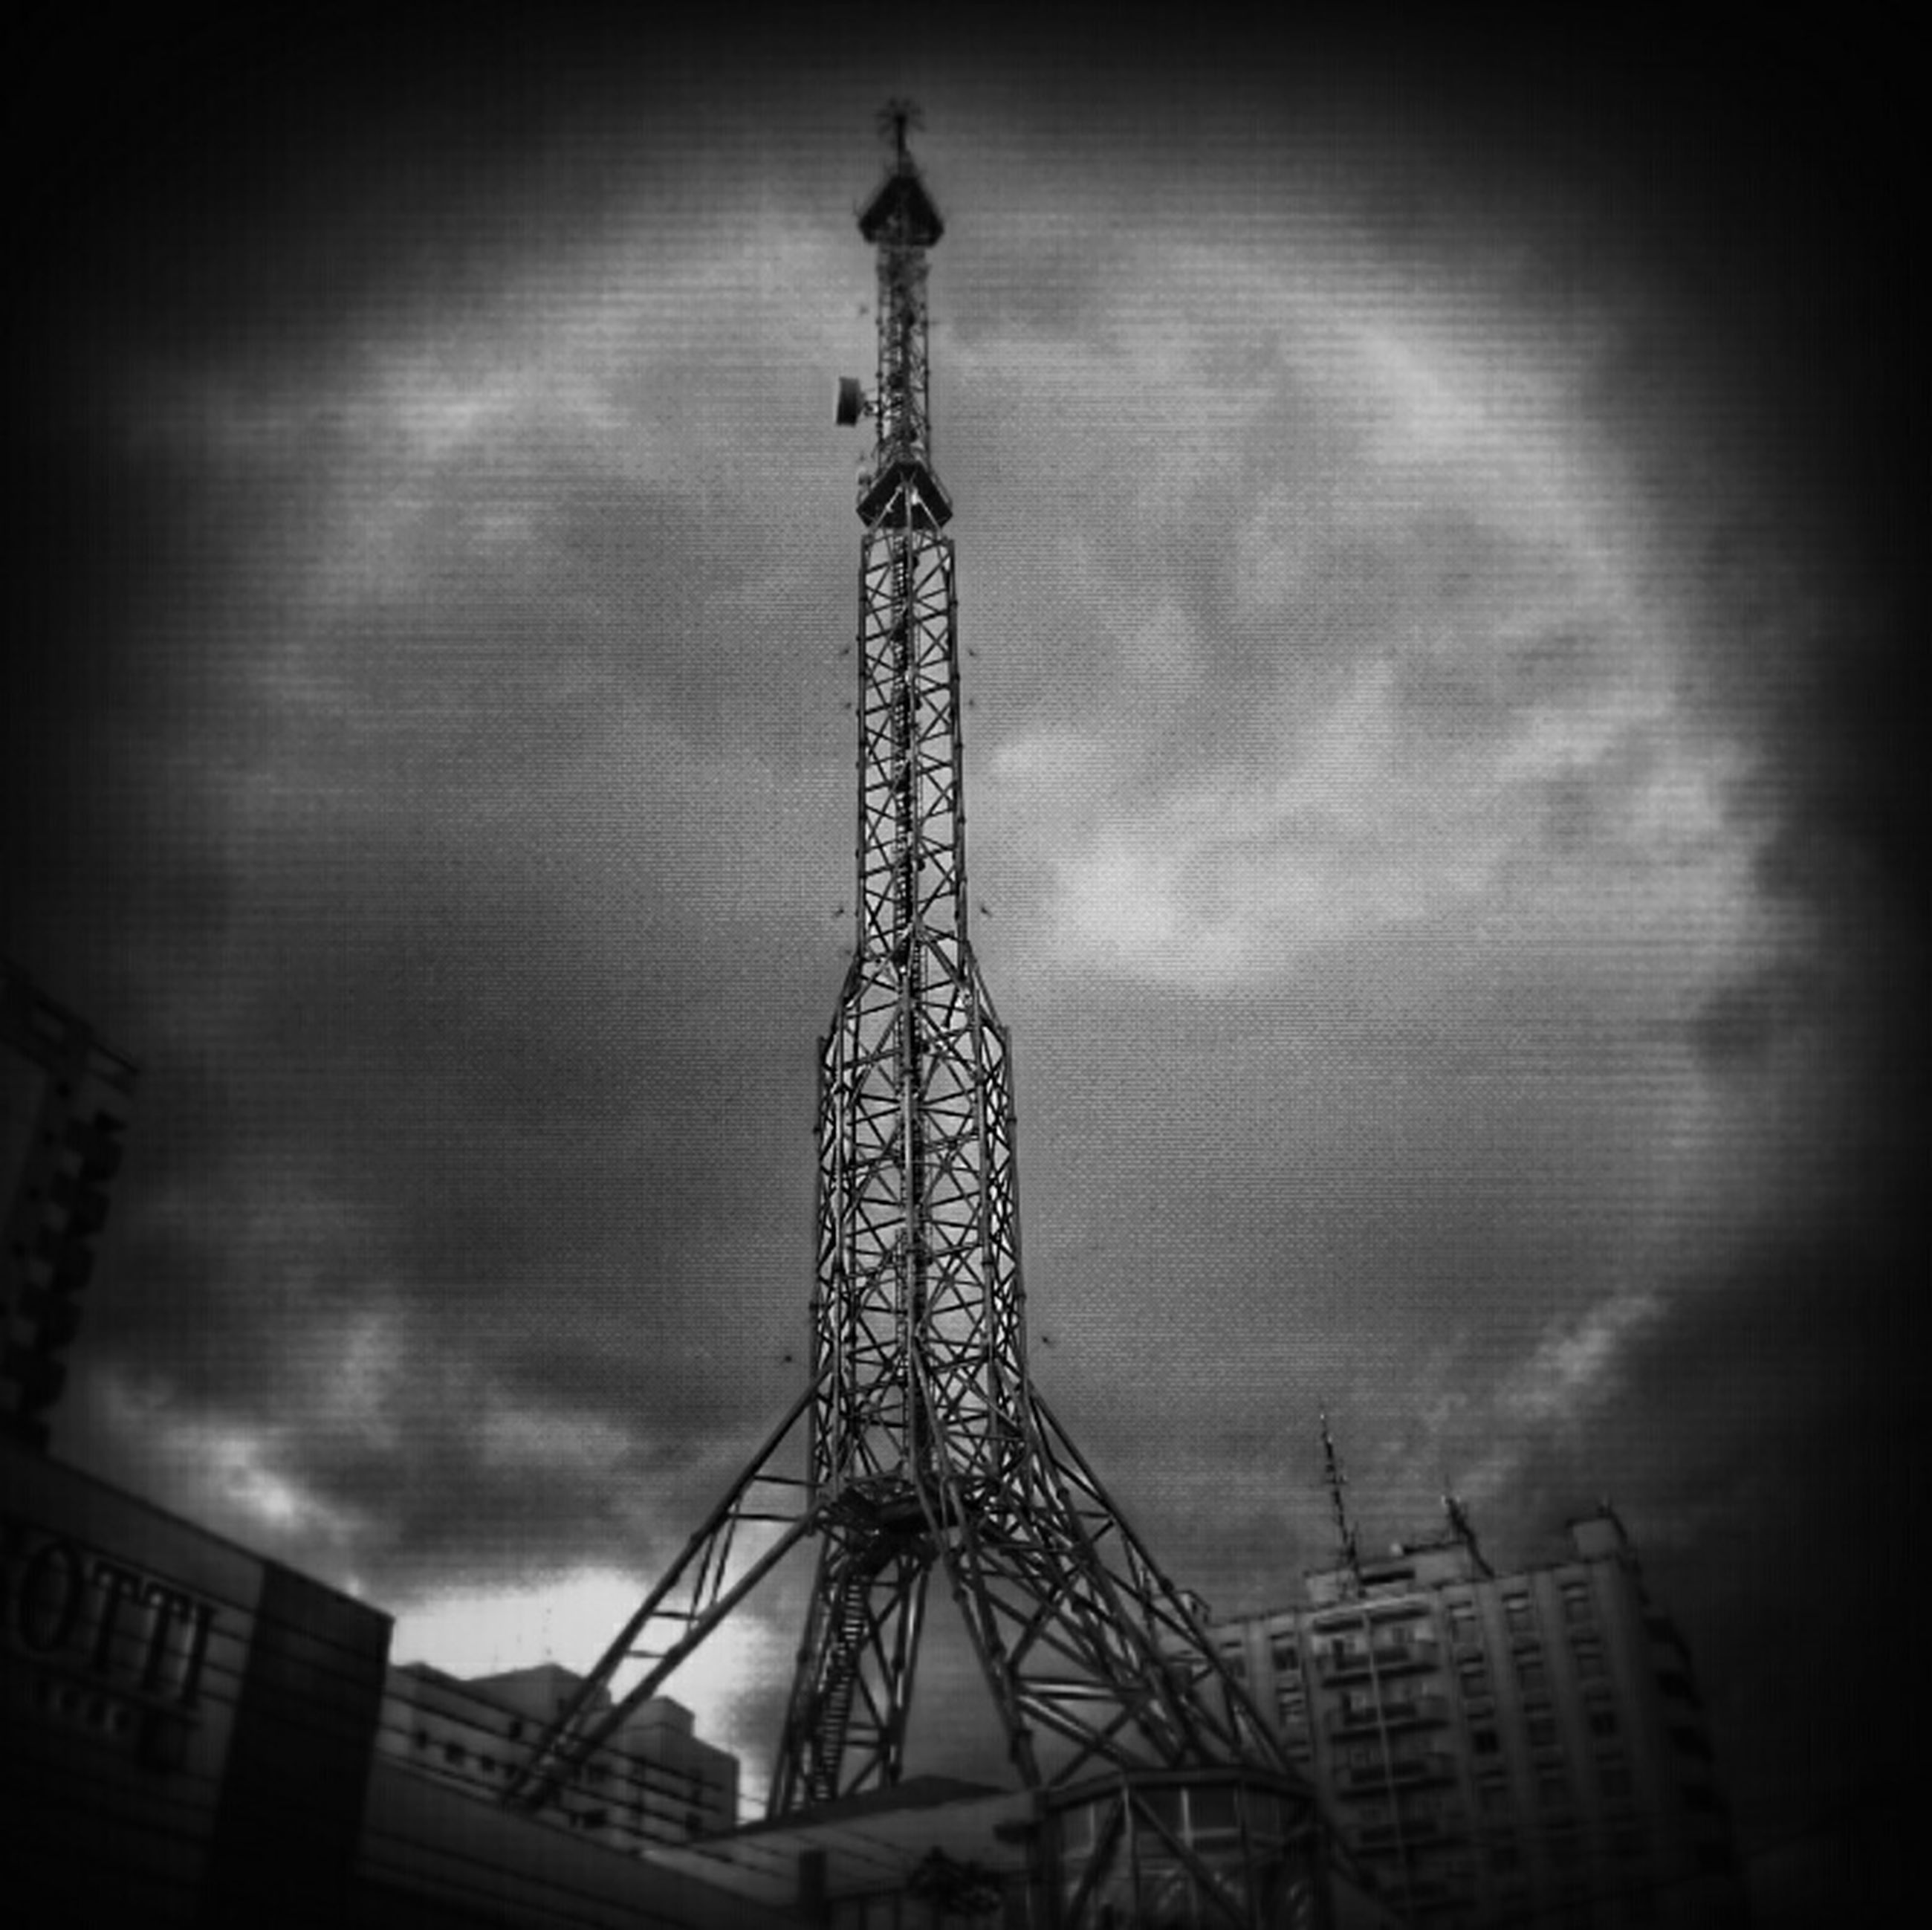 built structure, low angle view, architecture, sky, building exterior, tall - high, cloud - sky, crane - construction machinery, city, tower, auto post production filter, dusk, cloudy, development, outdoors, travel destinations, no people, silhouette, communications tower, capital cities